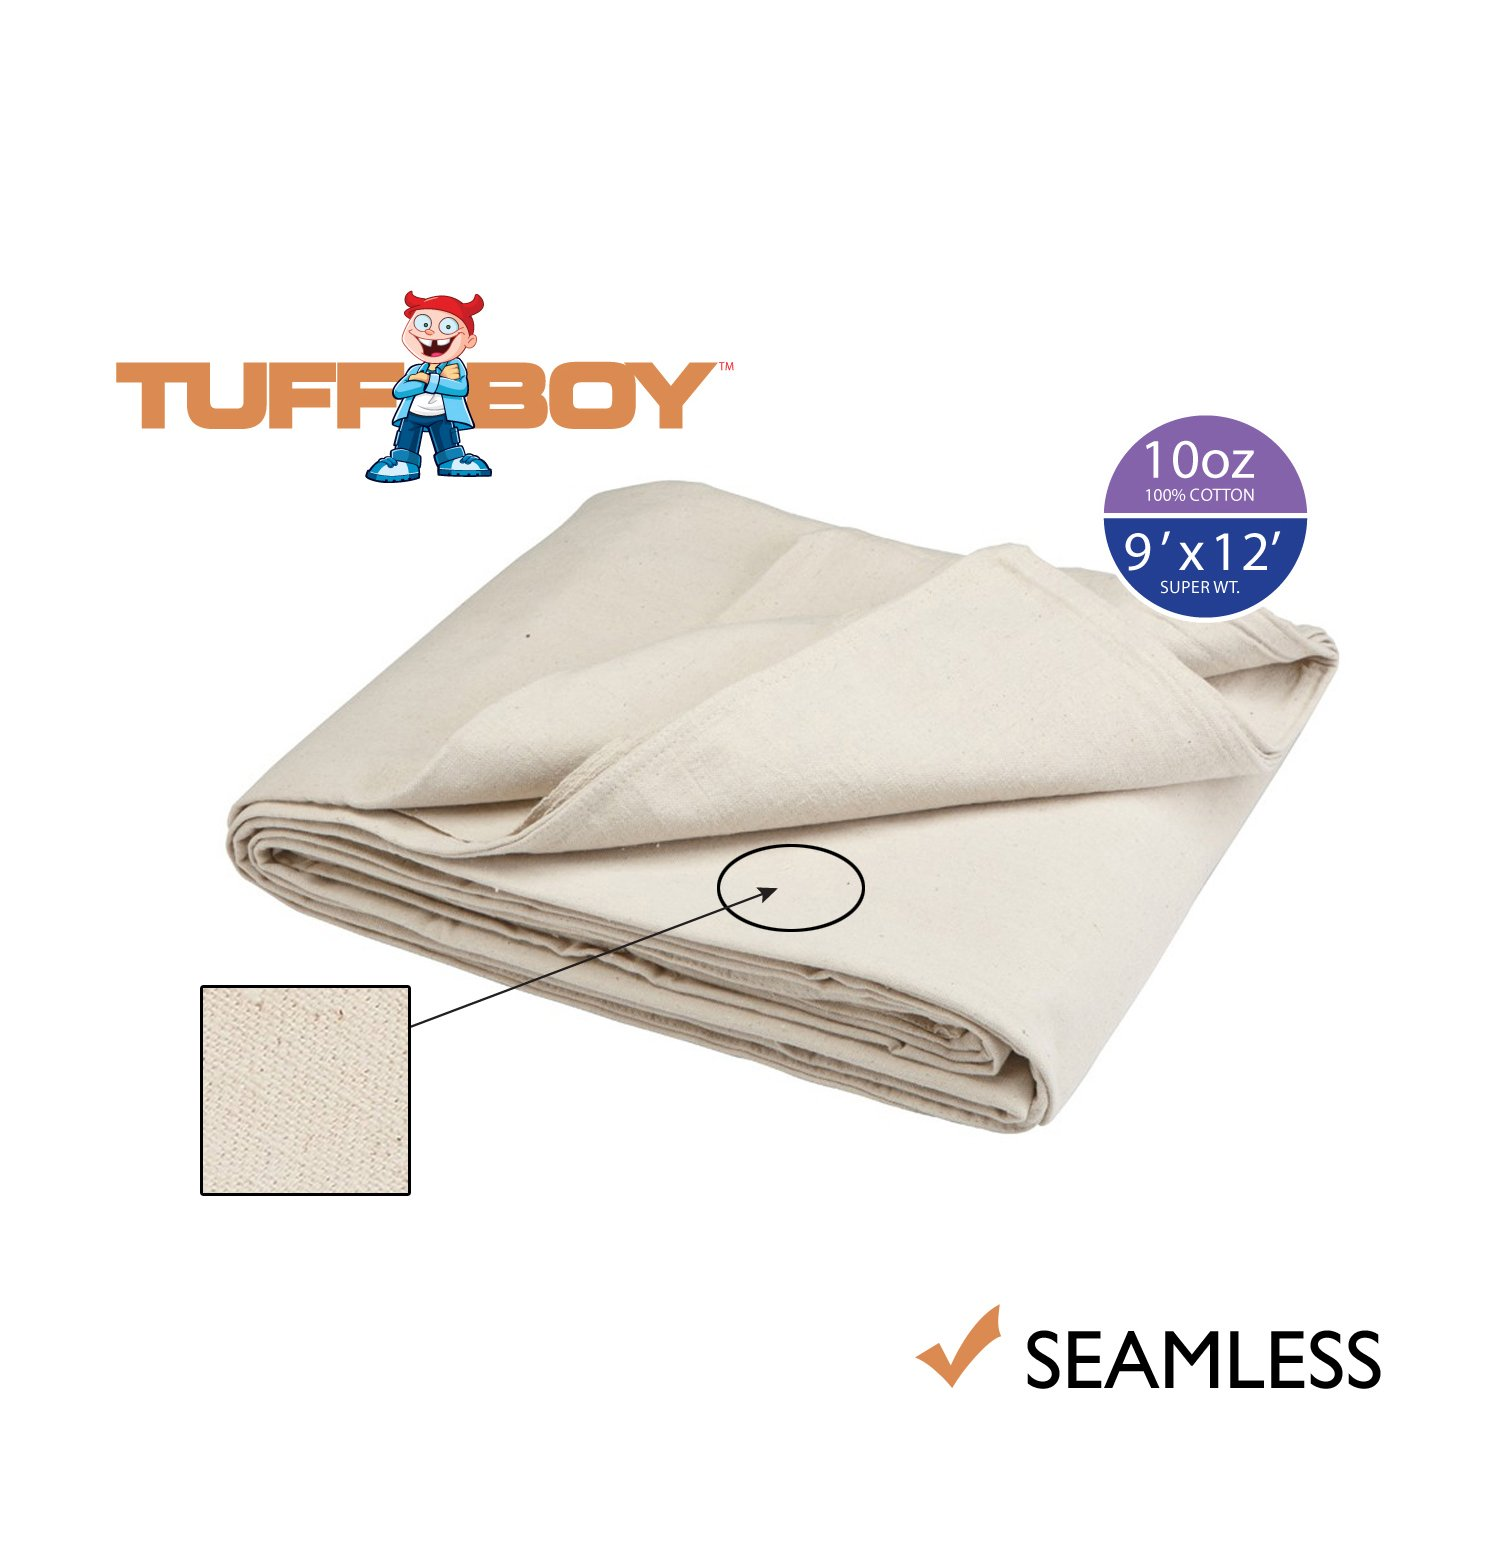 TUFFBOY 10 OZ. Super Weight Cotton Canvas All Purpose Drop Cloth 9Ft. X 12Ft.   SEAMLESS